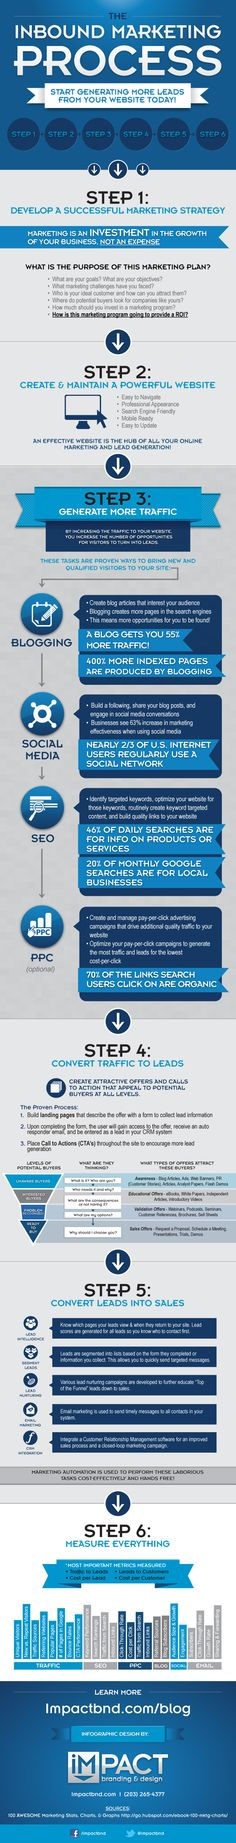 The 6 Step Inbound Marketing Process [Infographic]